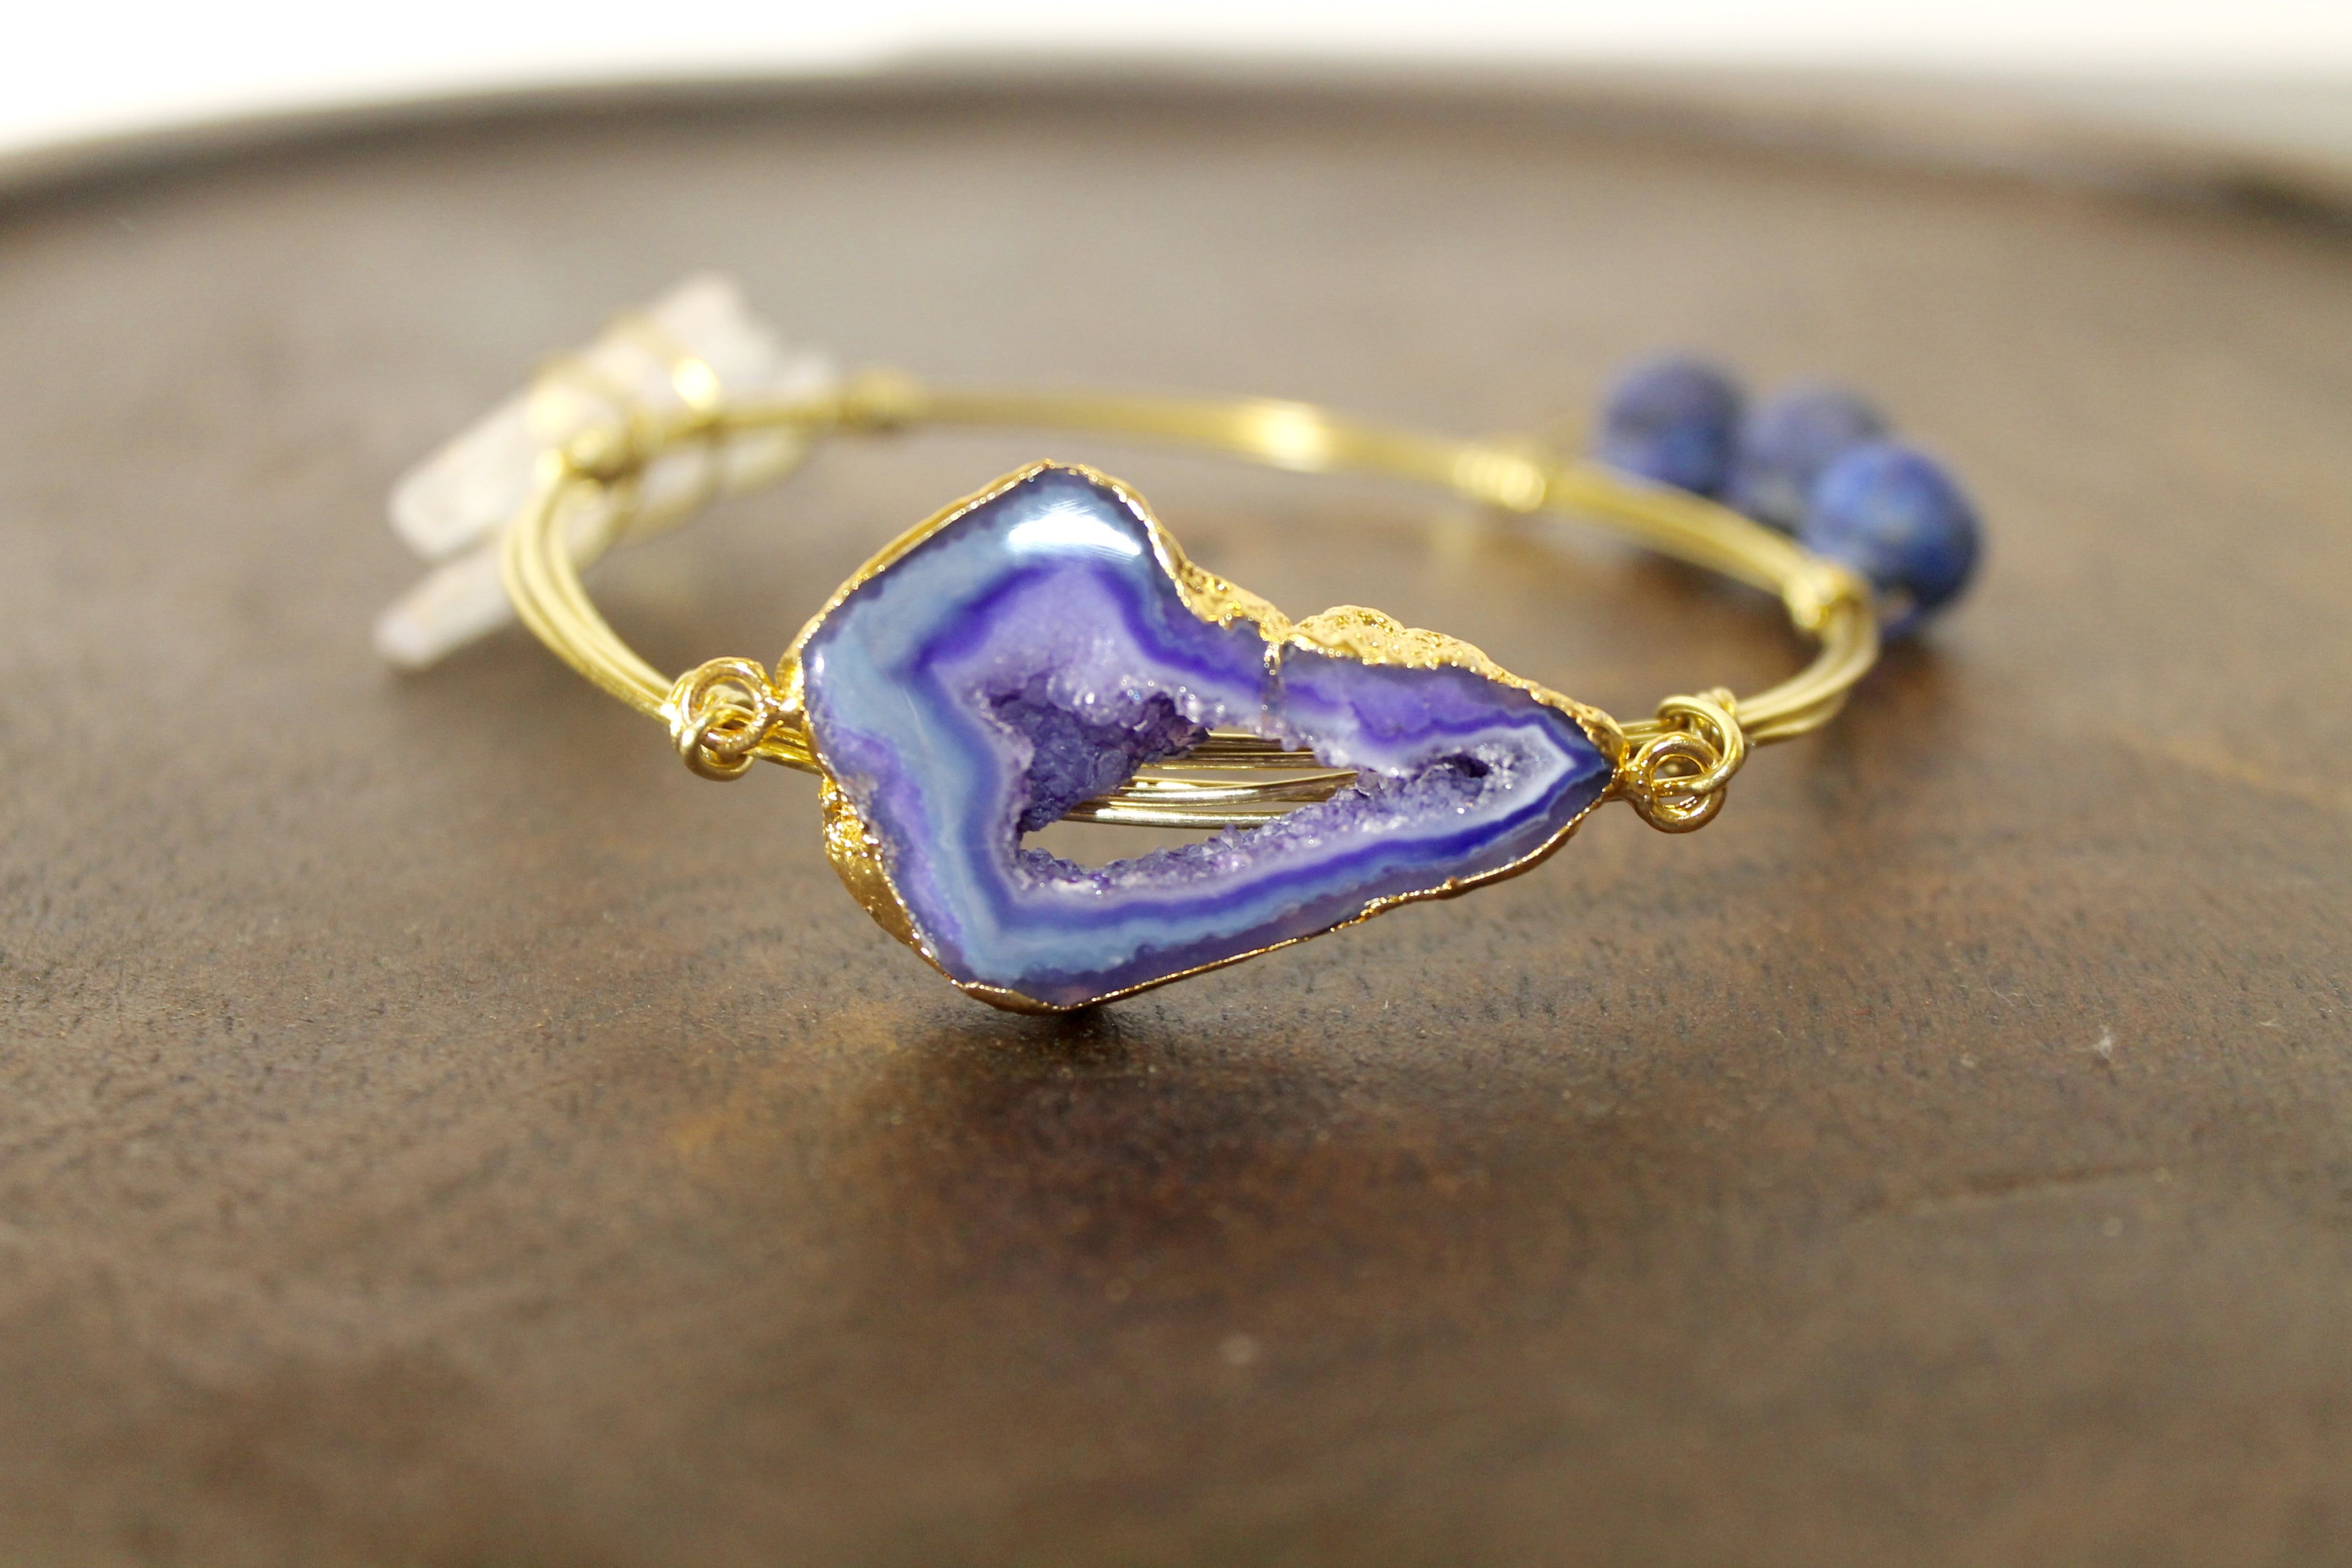 The Lila, wire bangles by Heatherly